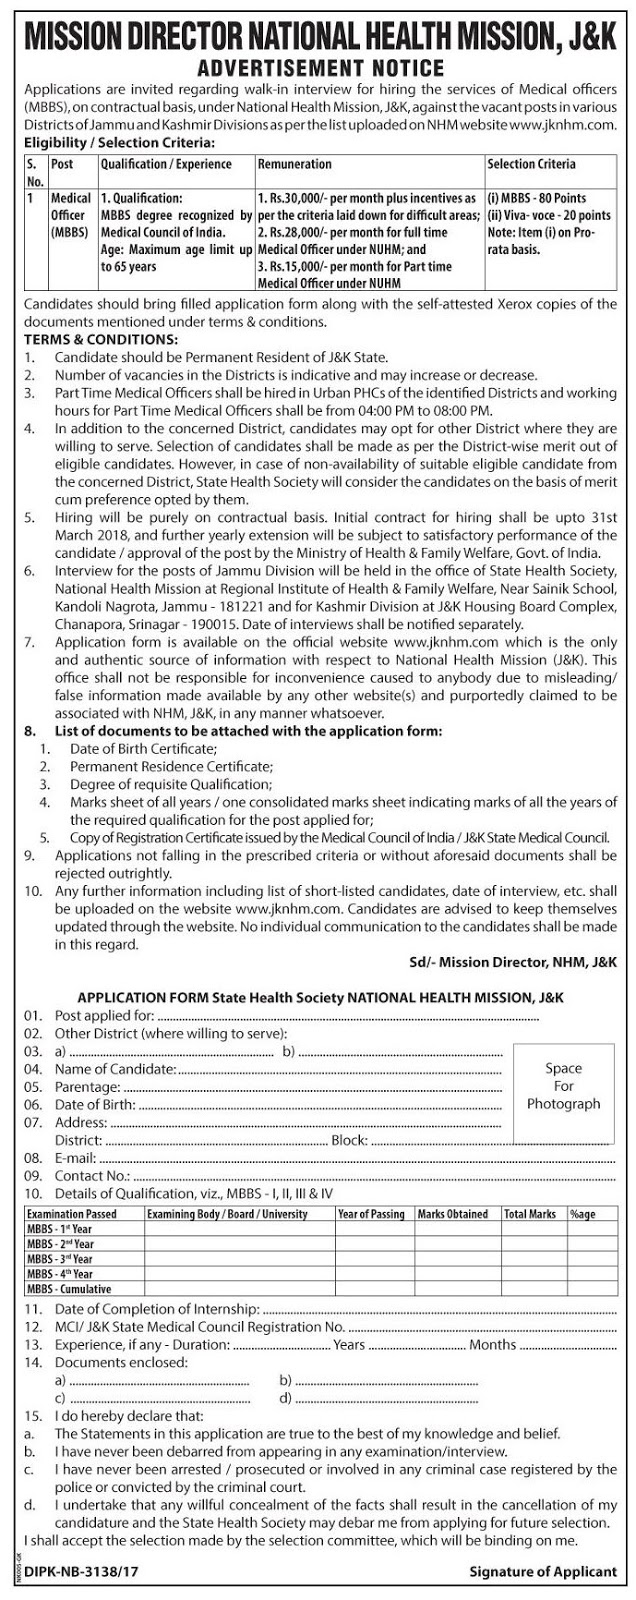 Medical Officer Recruitment under National Health Mission, J&K